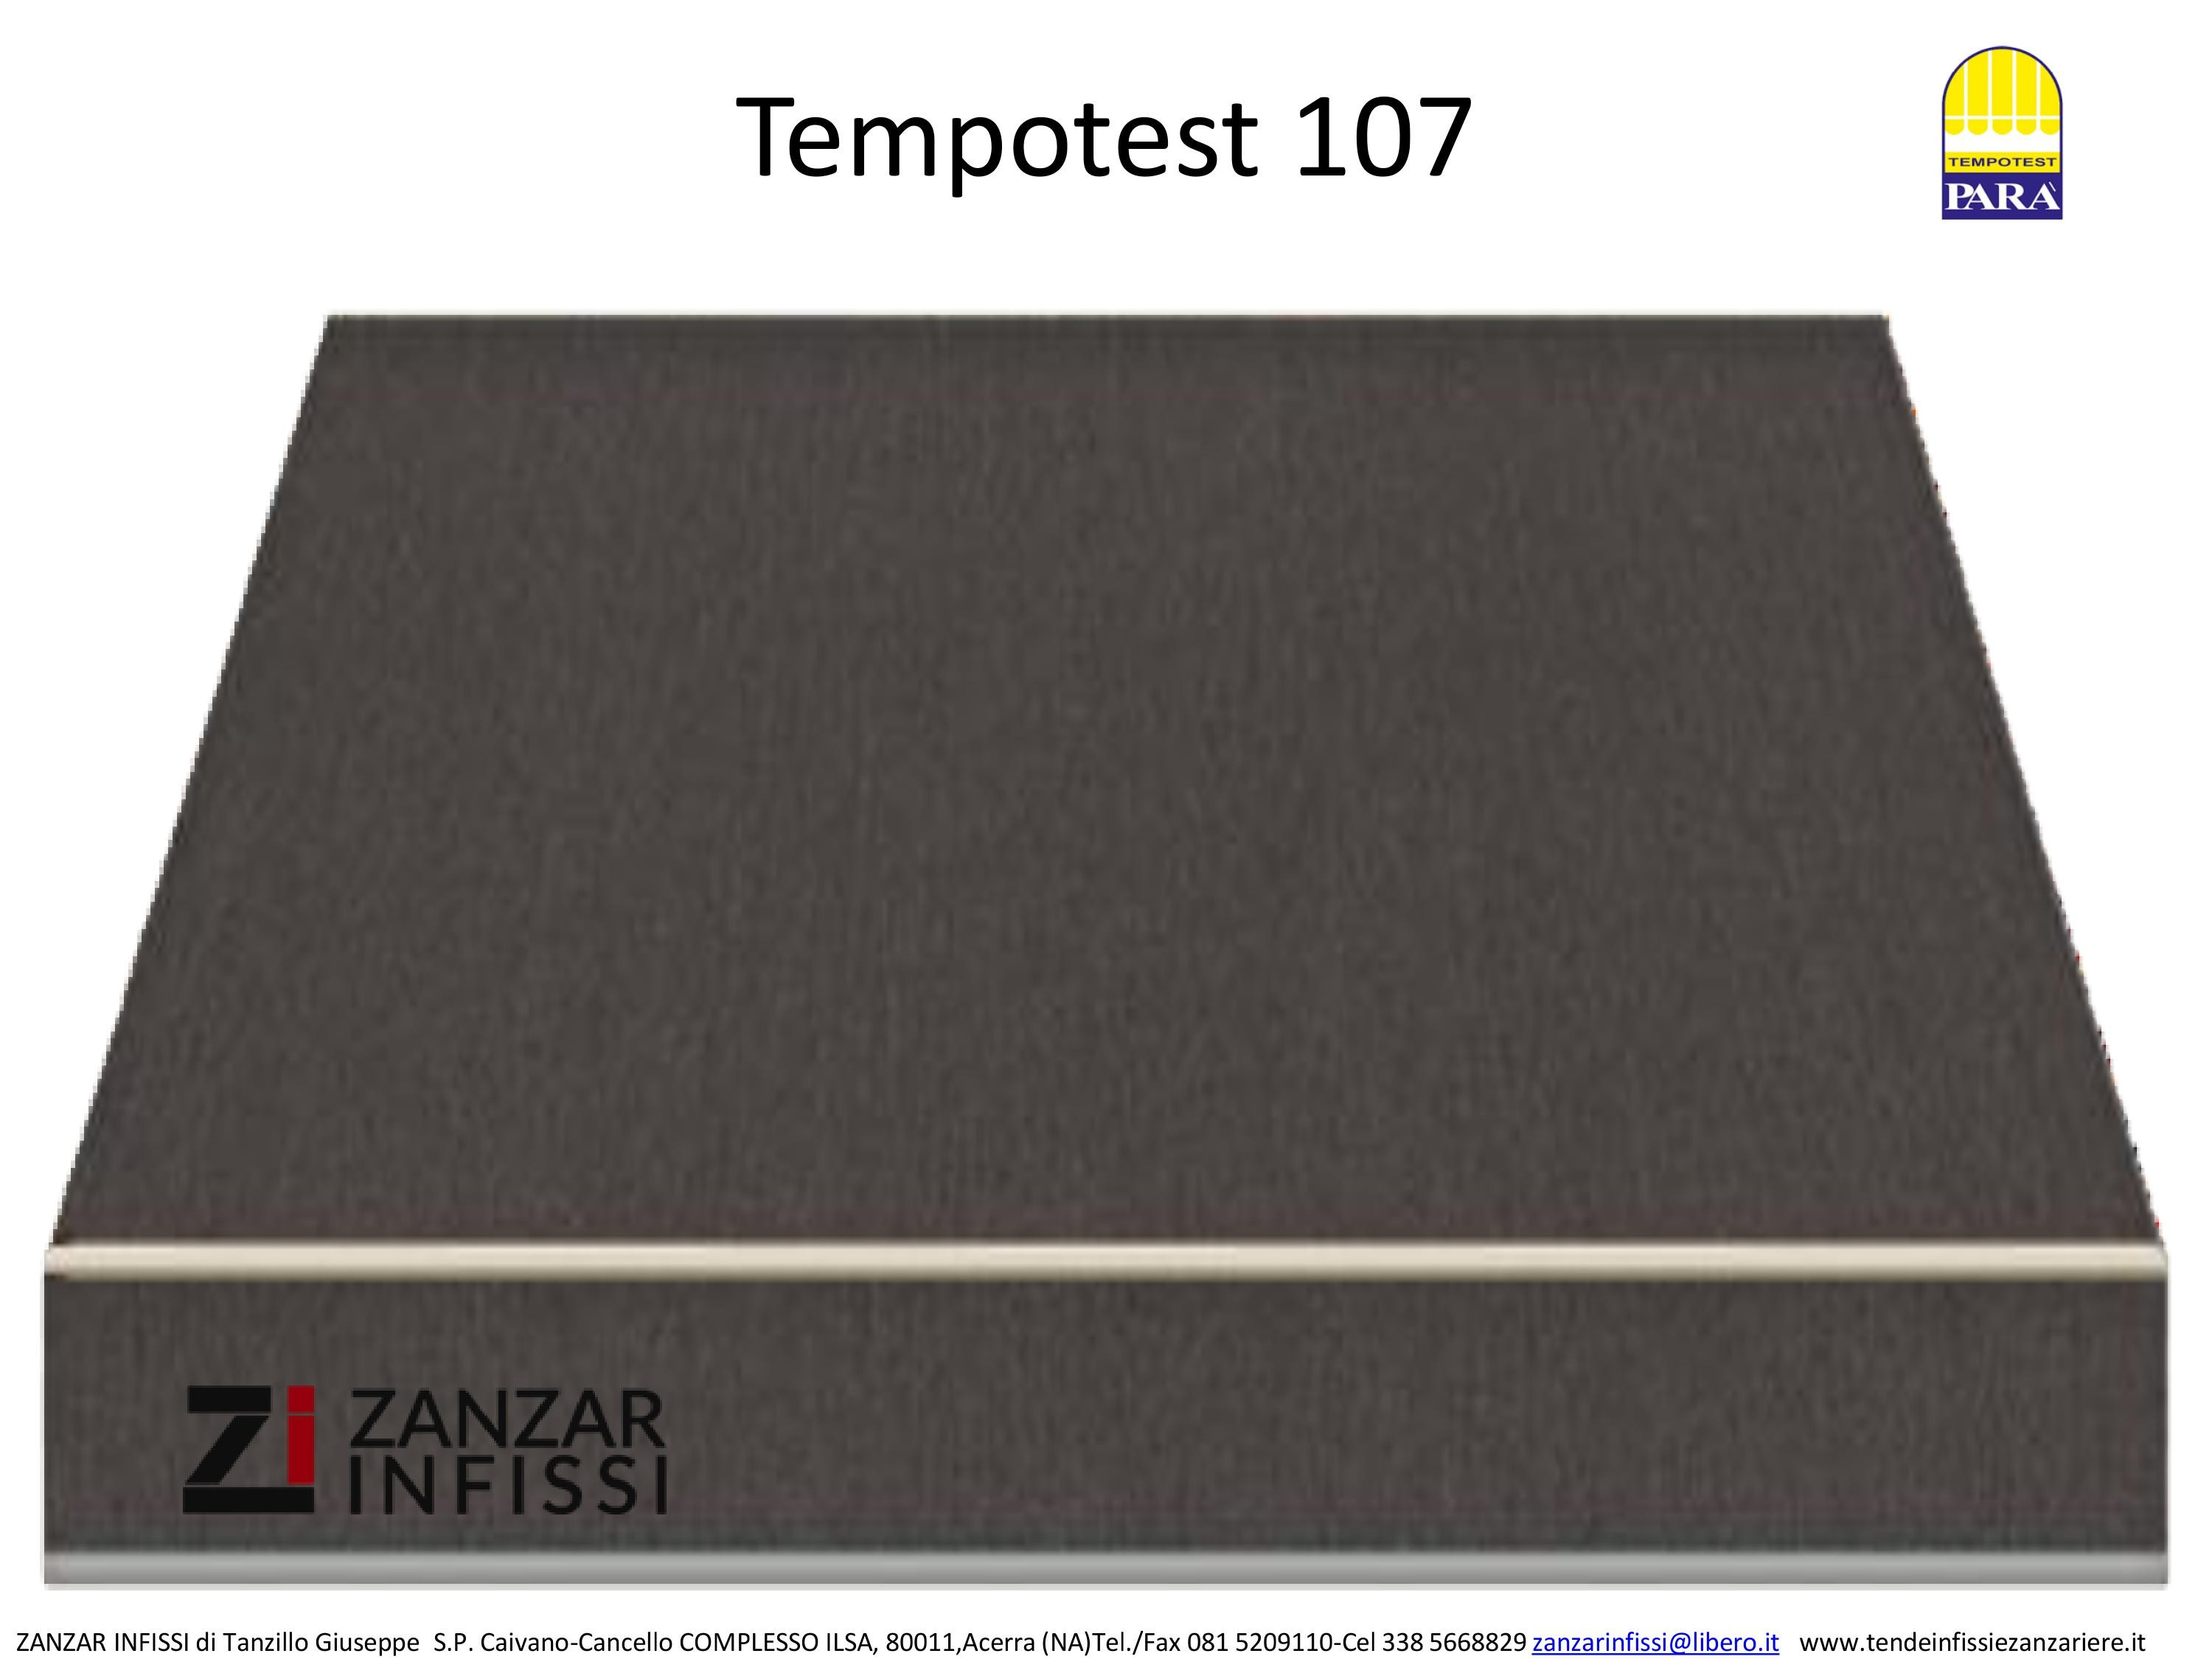 Tempotest 107